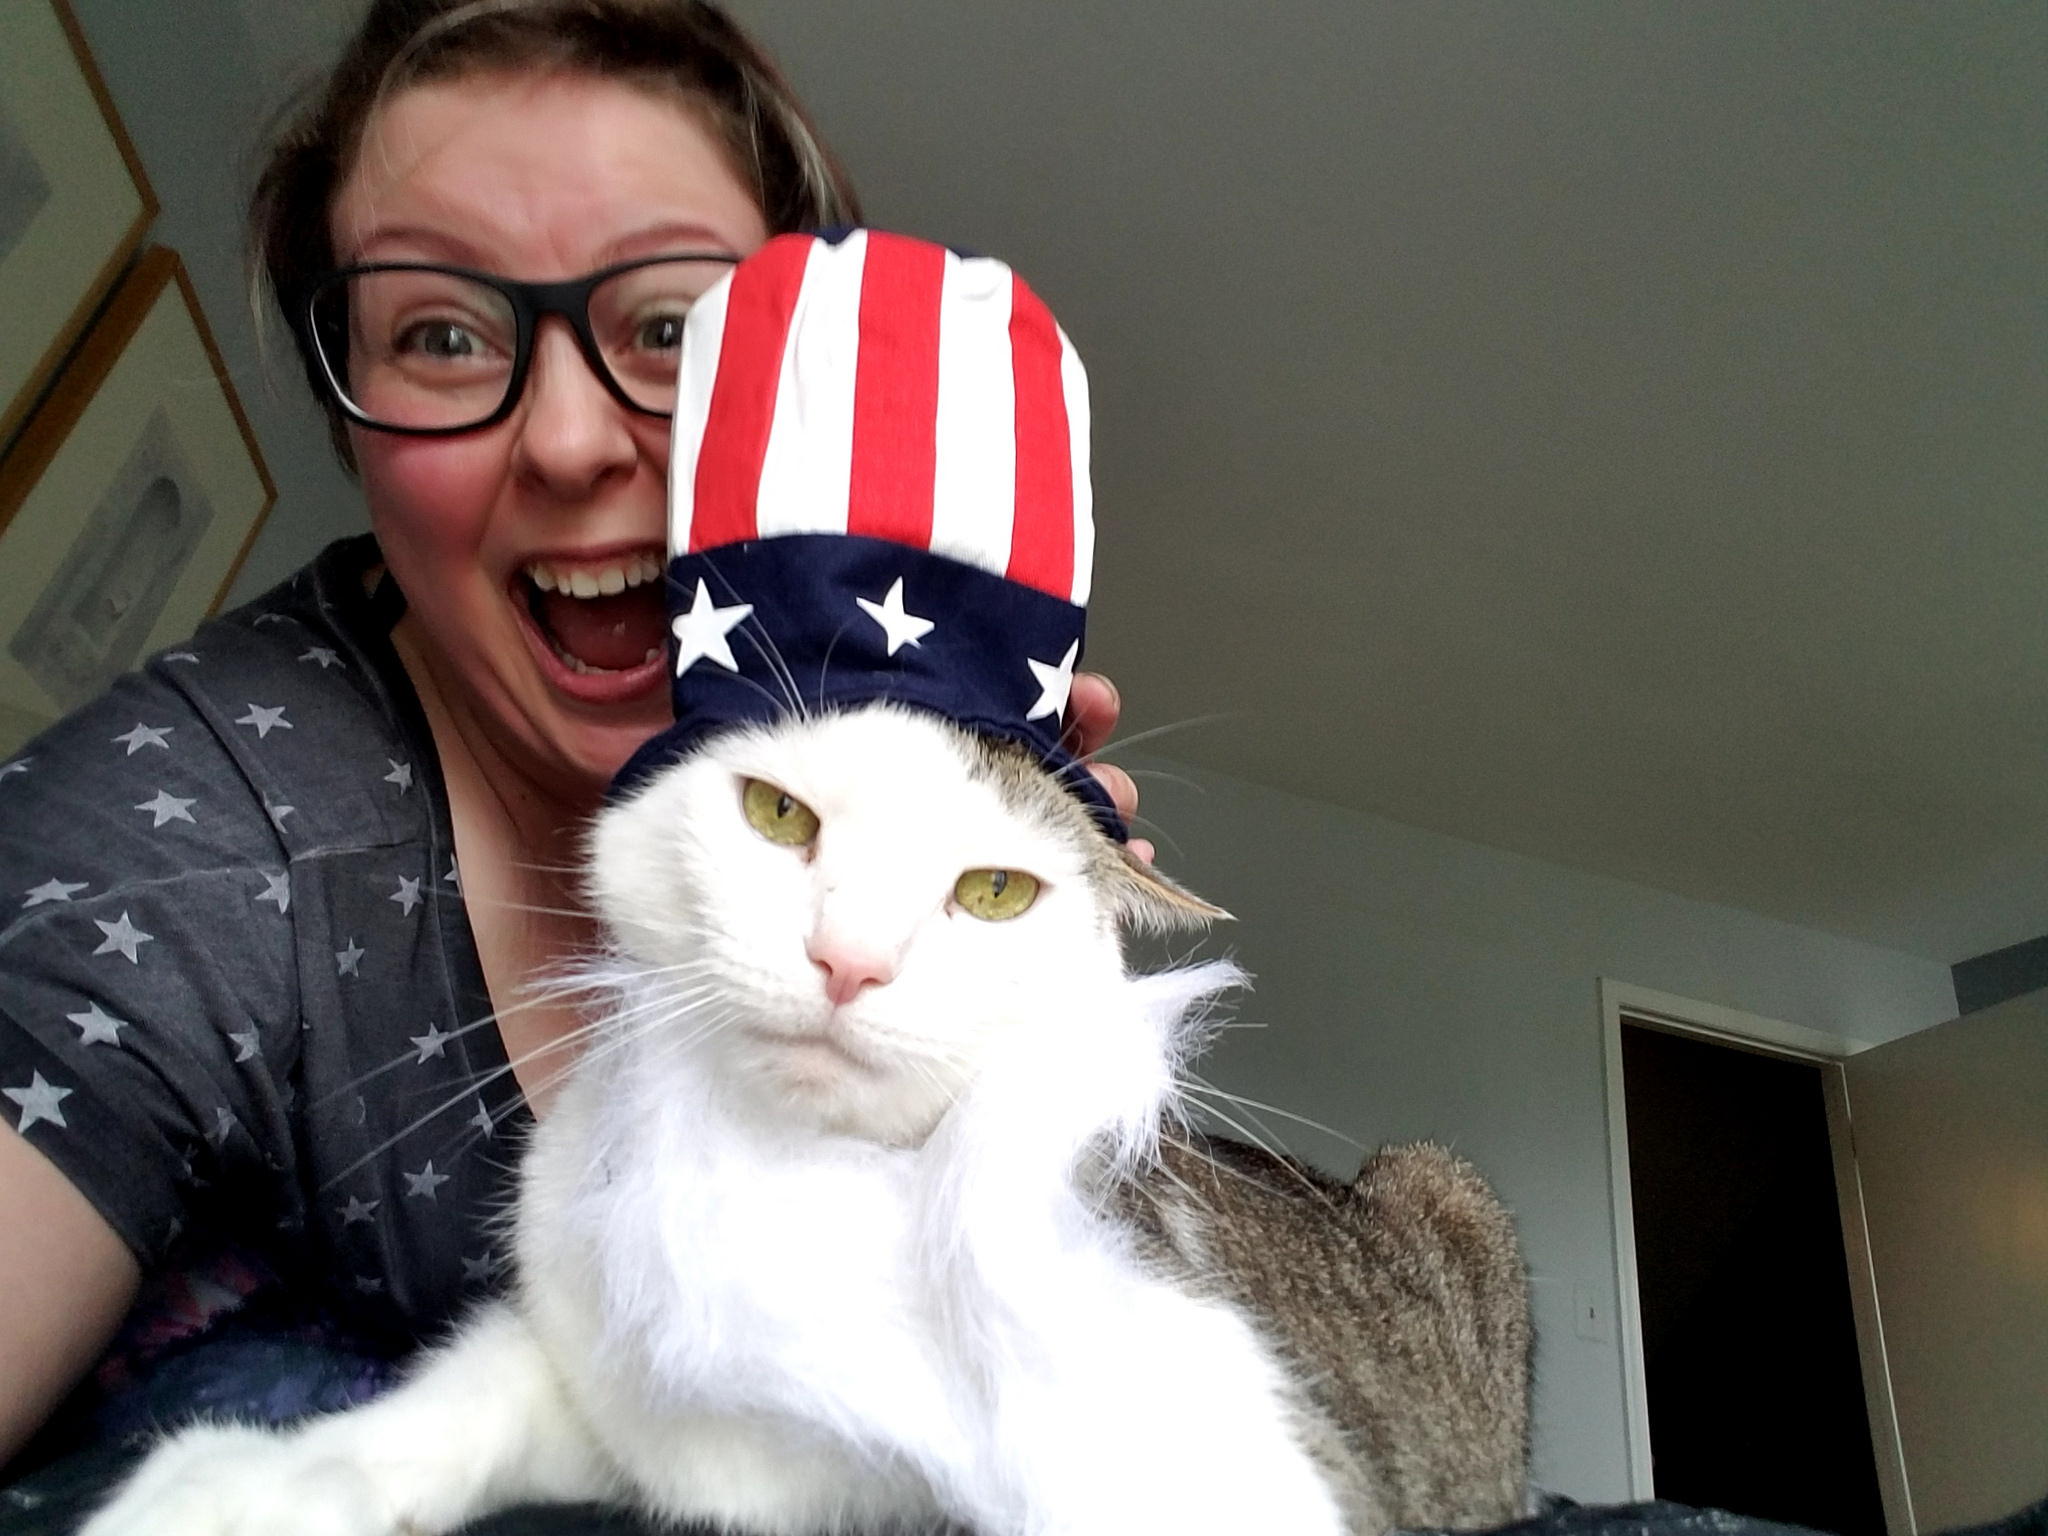 The author and her cat, Shemp. The author is ecstatic. The cat, who wears an Uncle Sam hat, is less so.